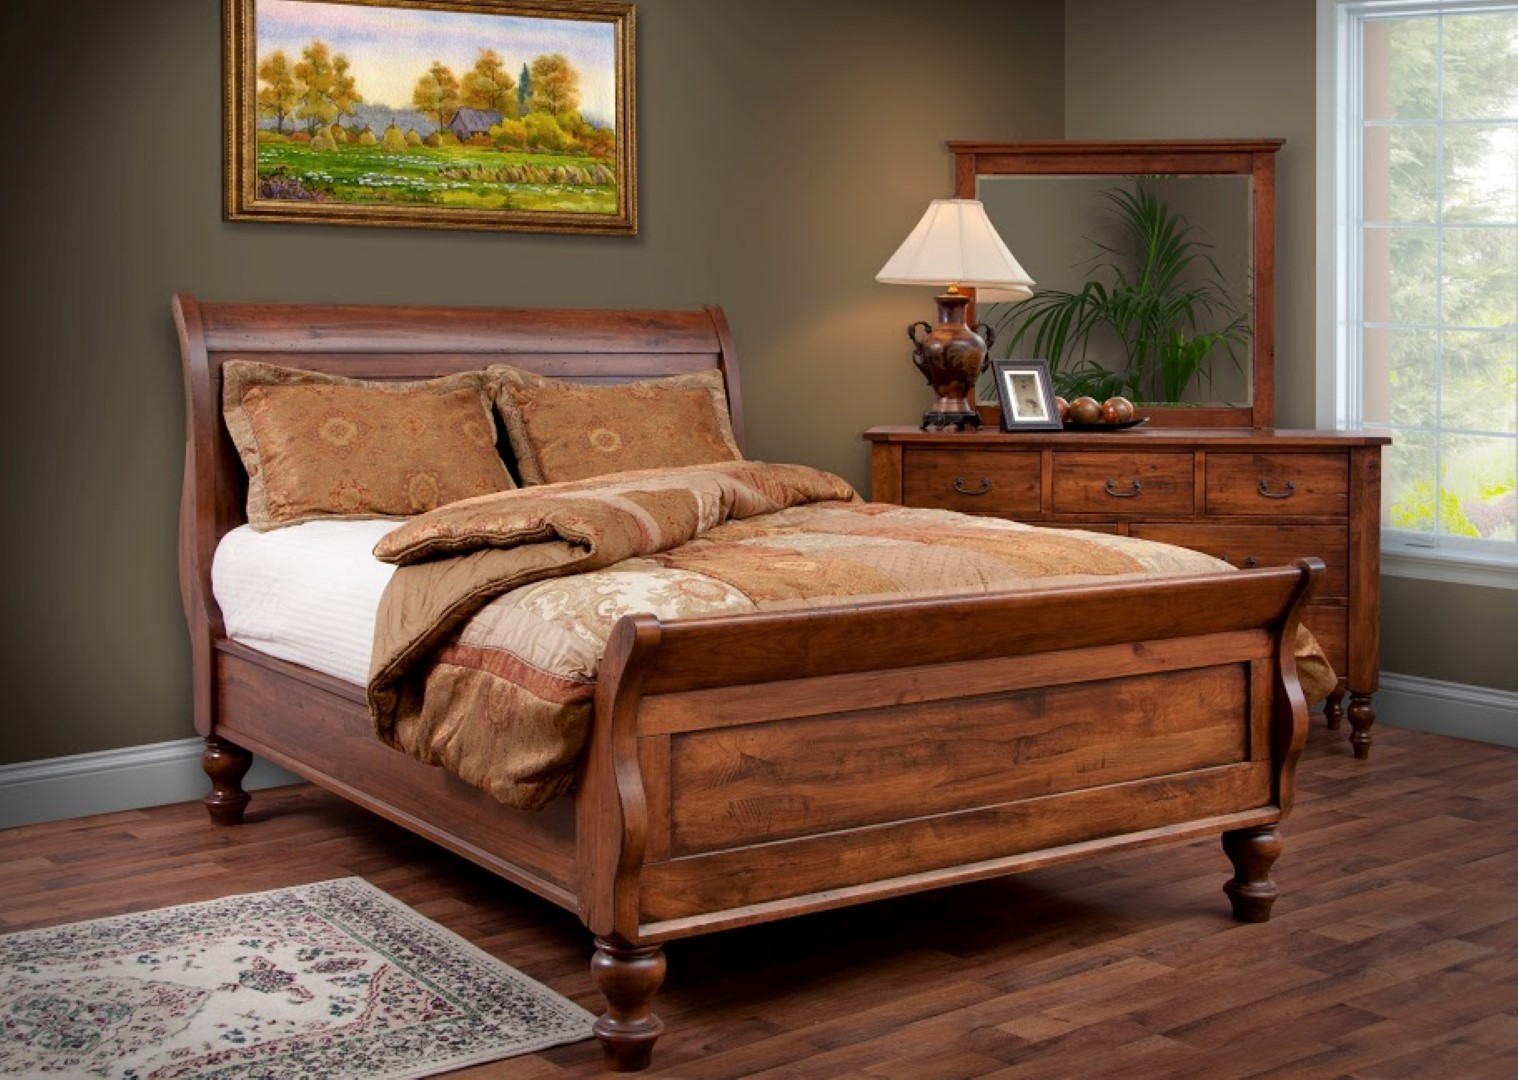 Canyon Creek Bedroom Suite - Town & Country Furniture